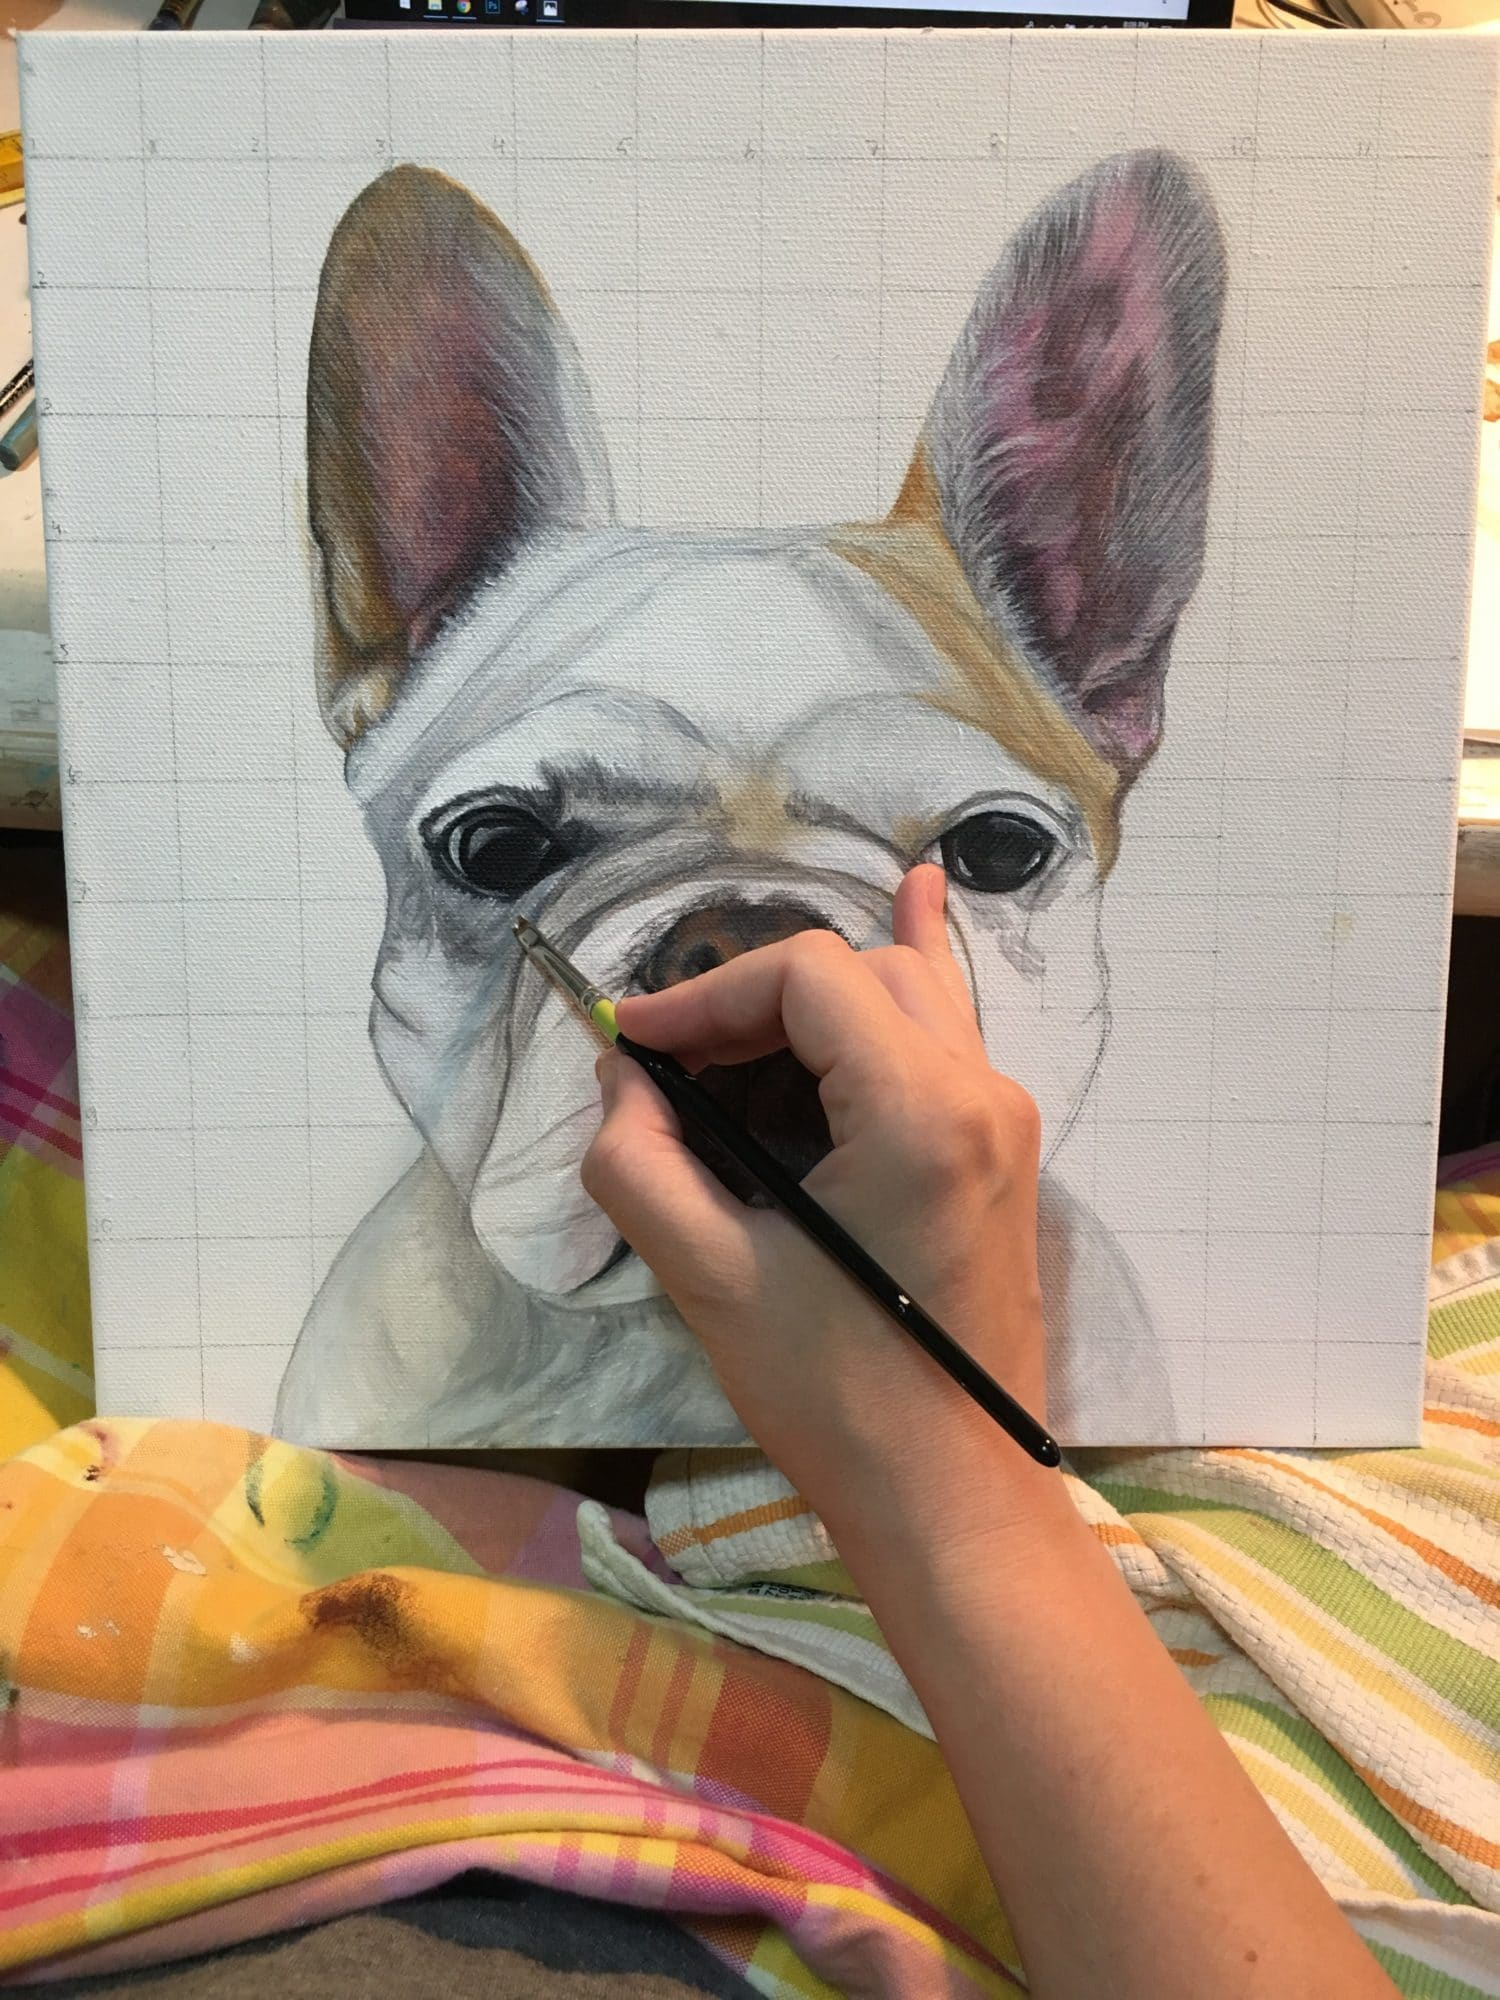 Erica Eriksdotter paints an original painting of a french bulldog